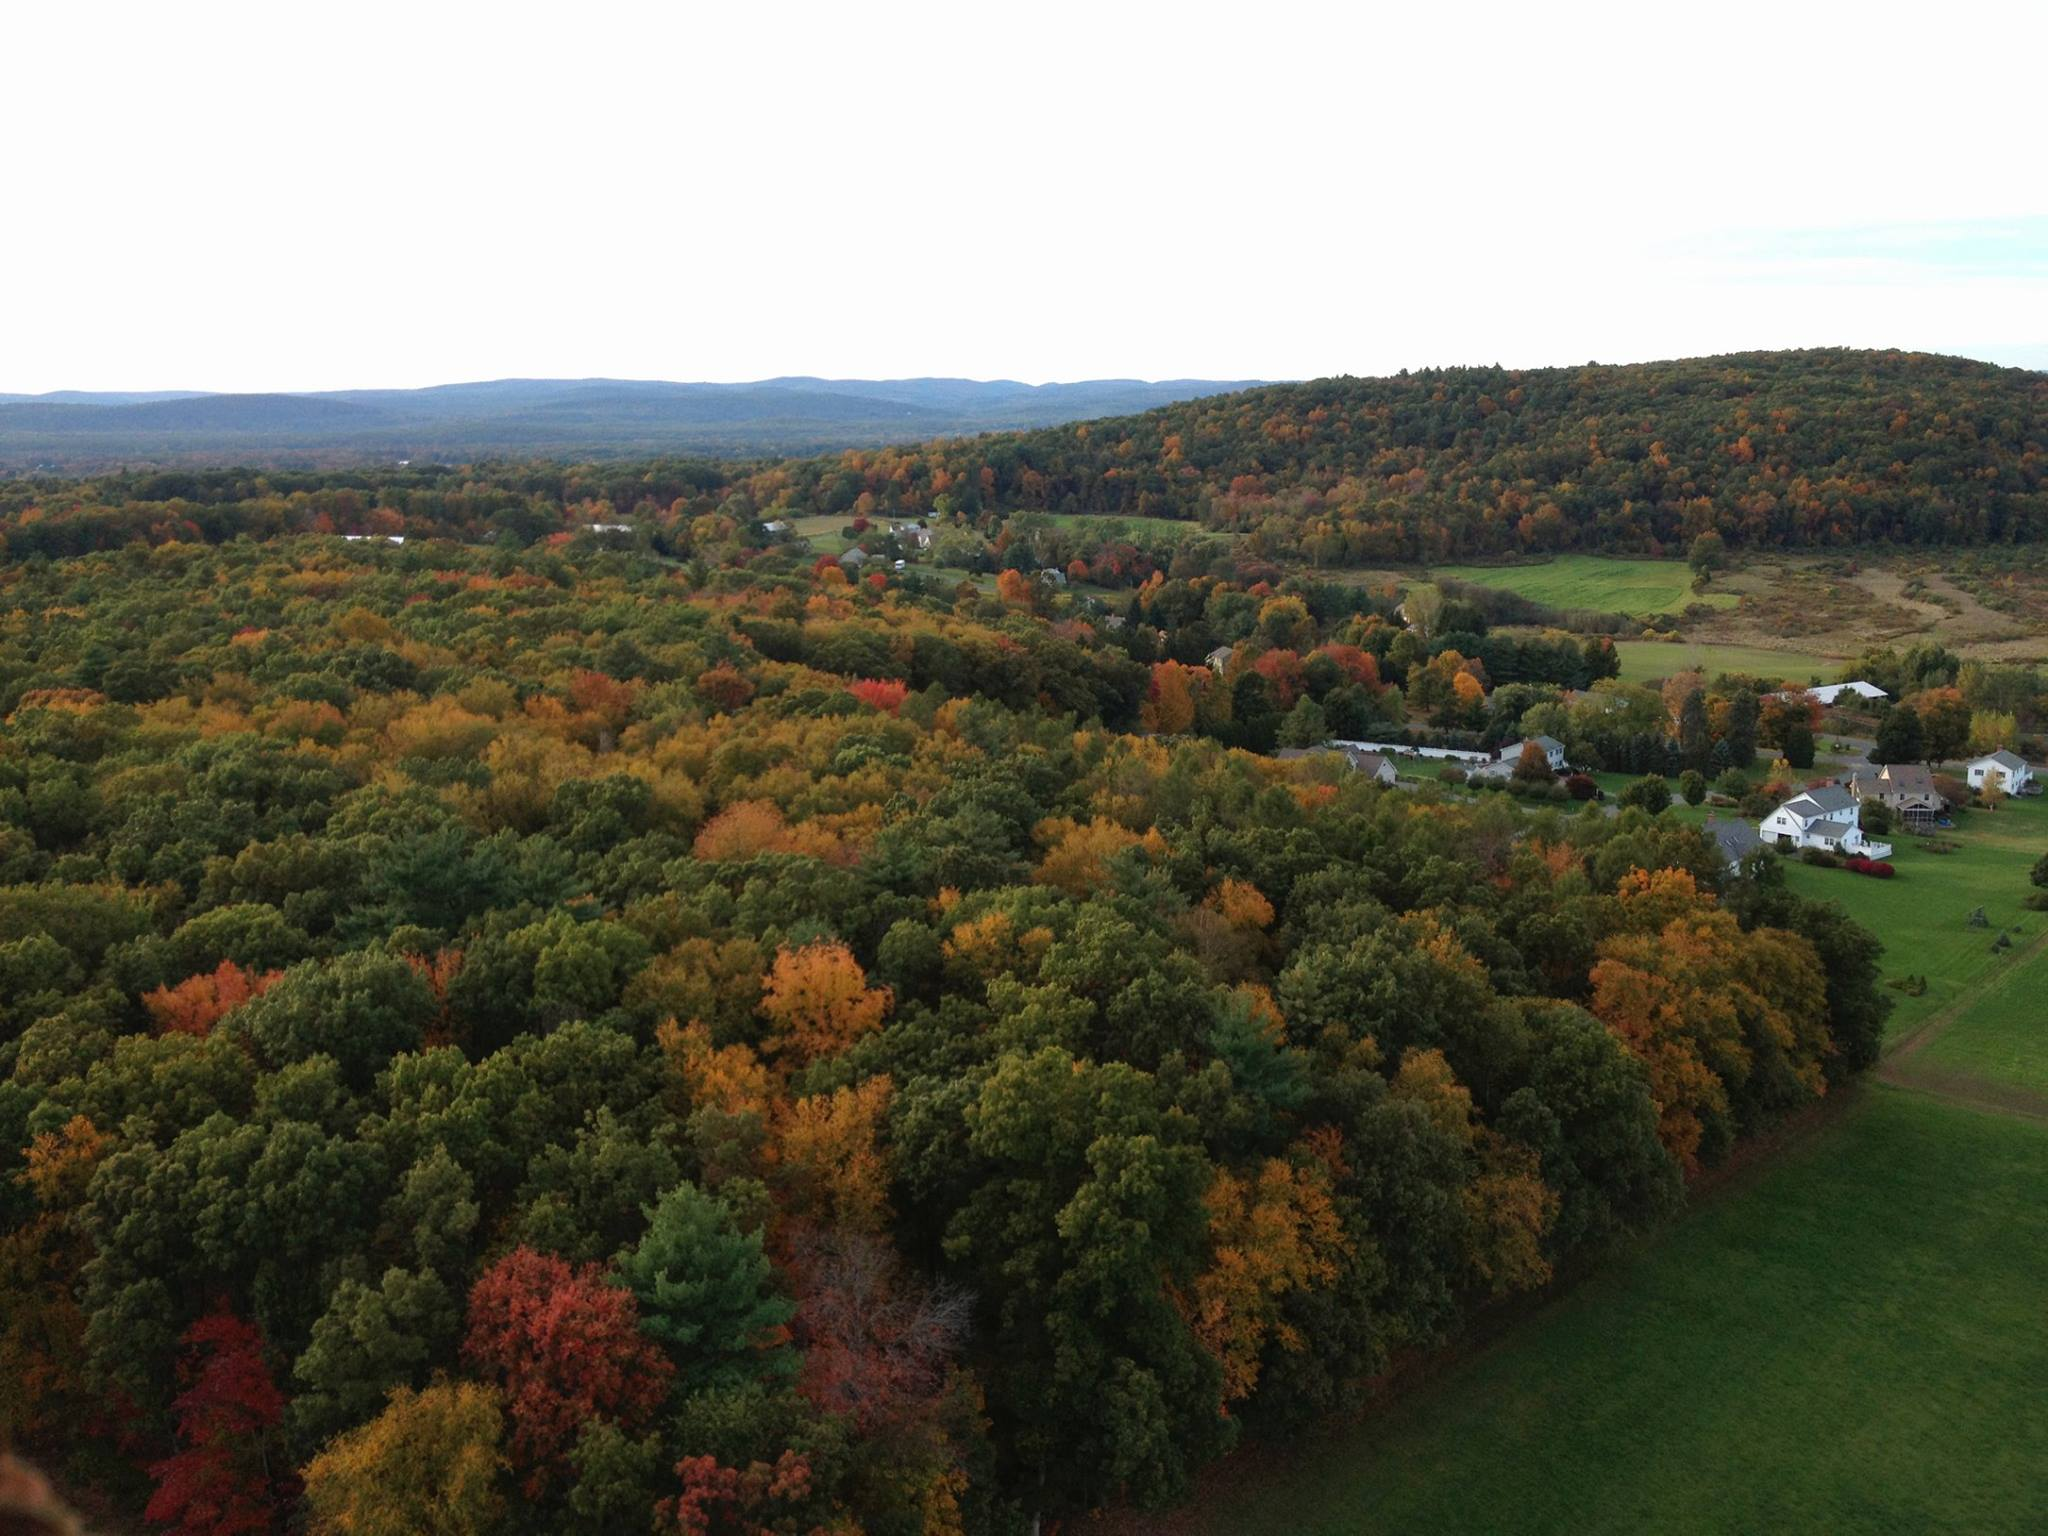 Mount Warner aerial view in the fall